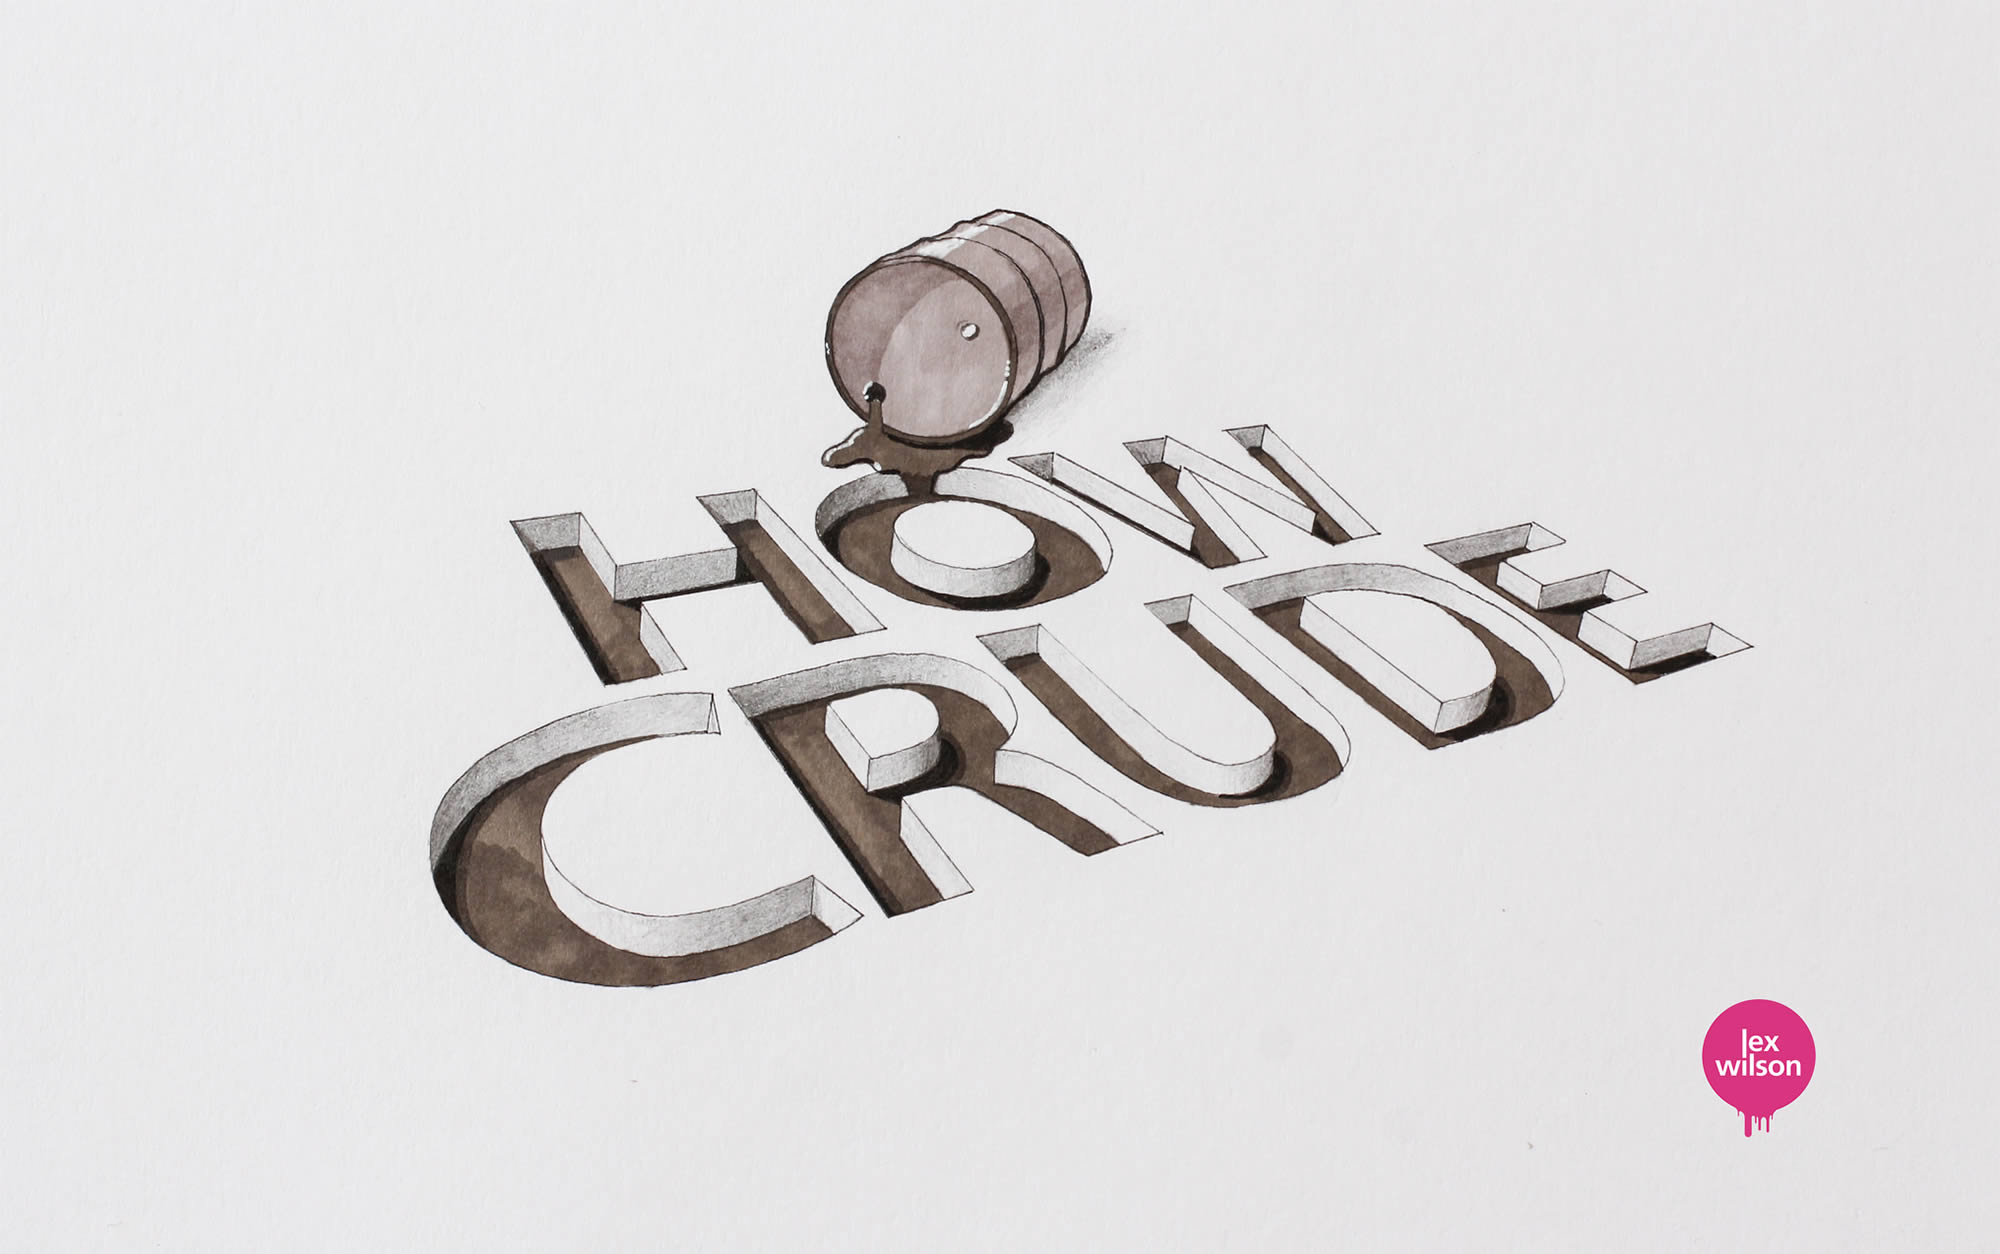 how crude, 3d typography